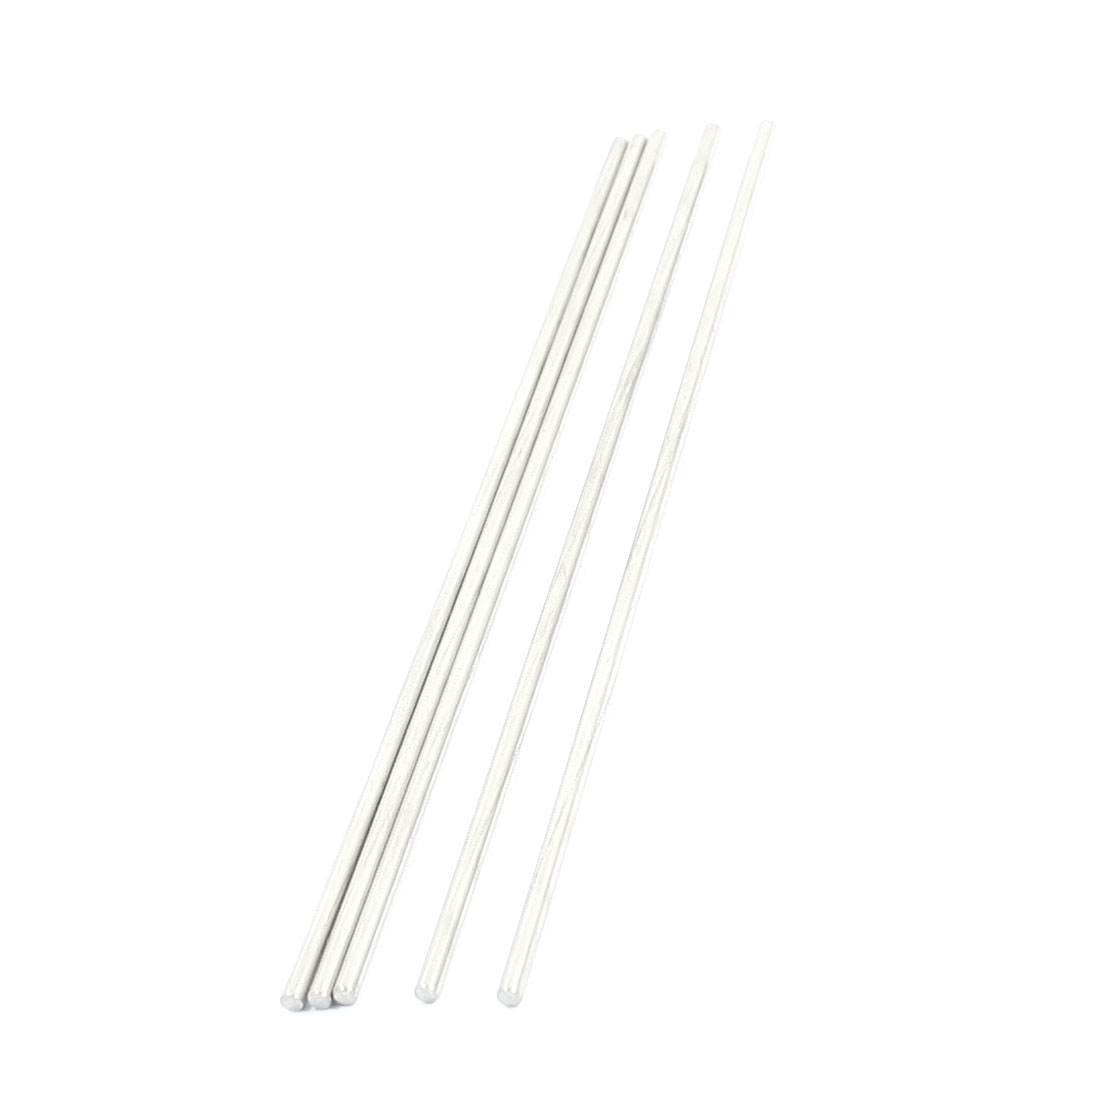 5pcs RC Aircraft Toys Replacement Stainless Steel Round Bar 150x2.5mm